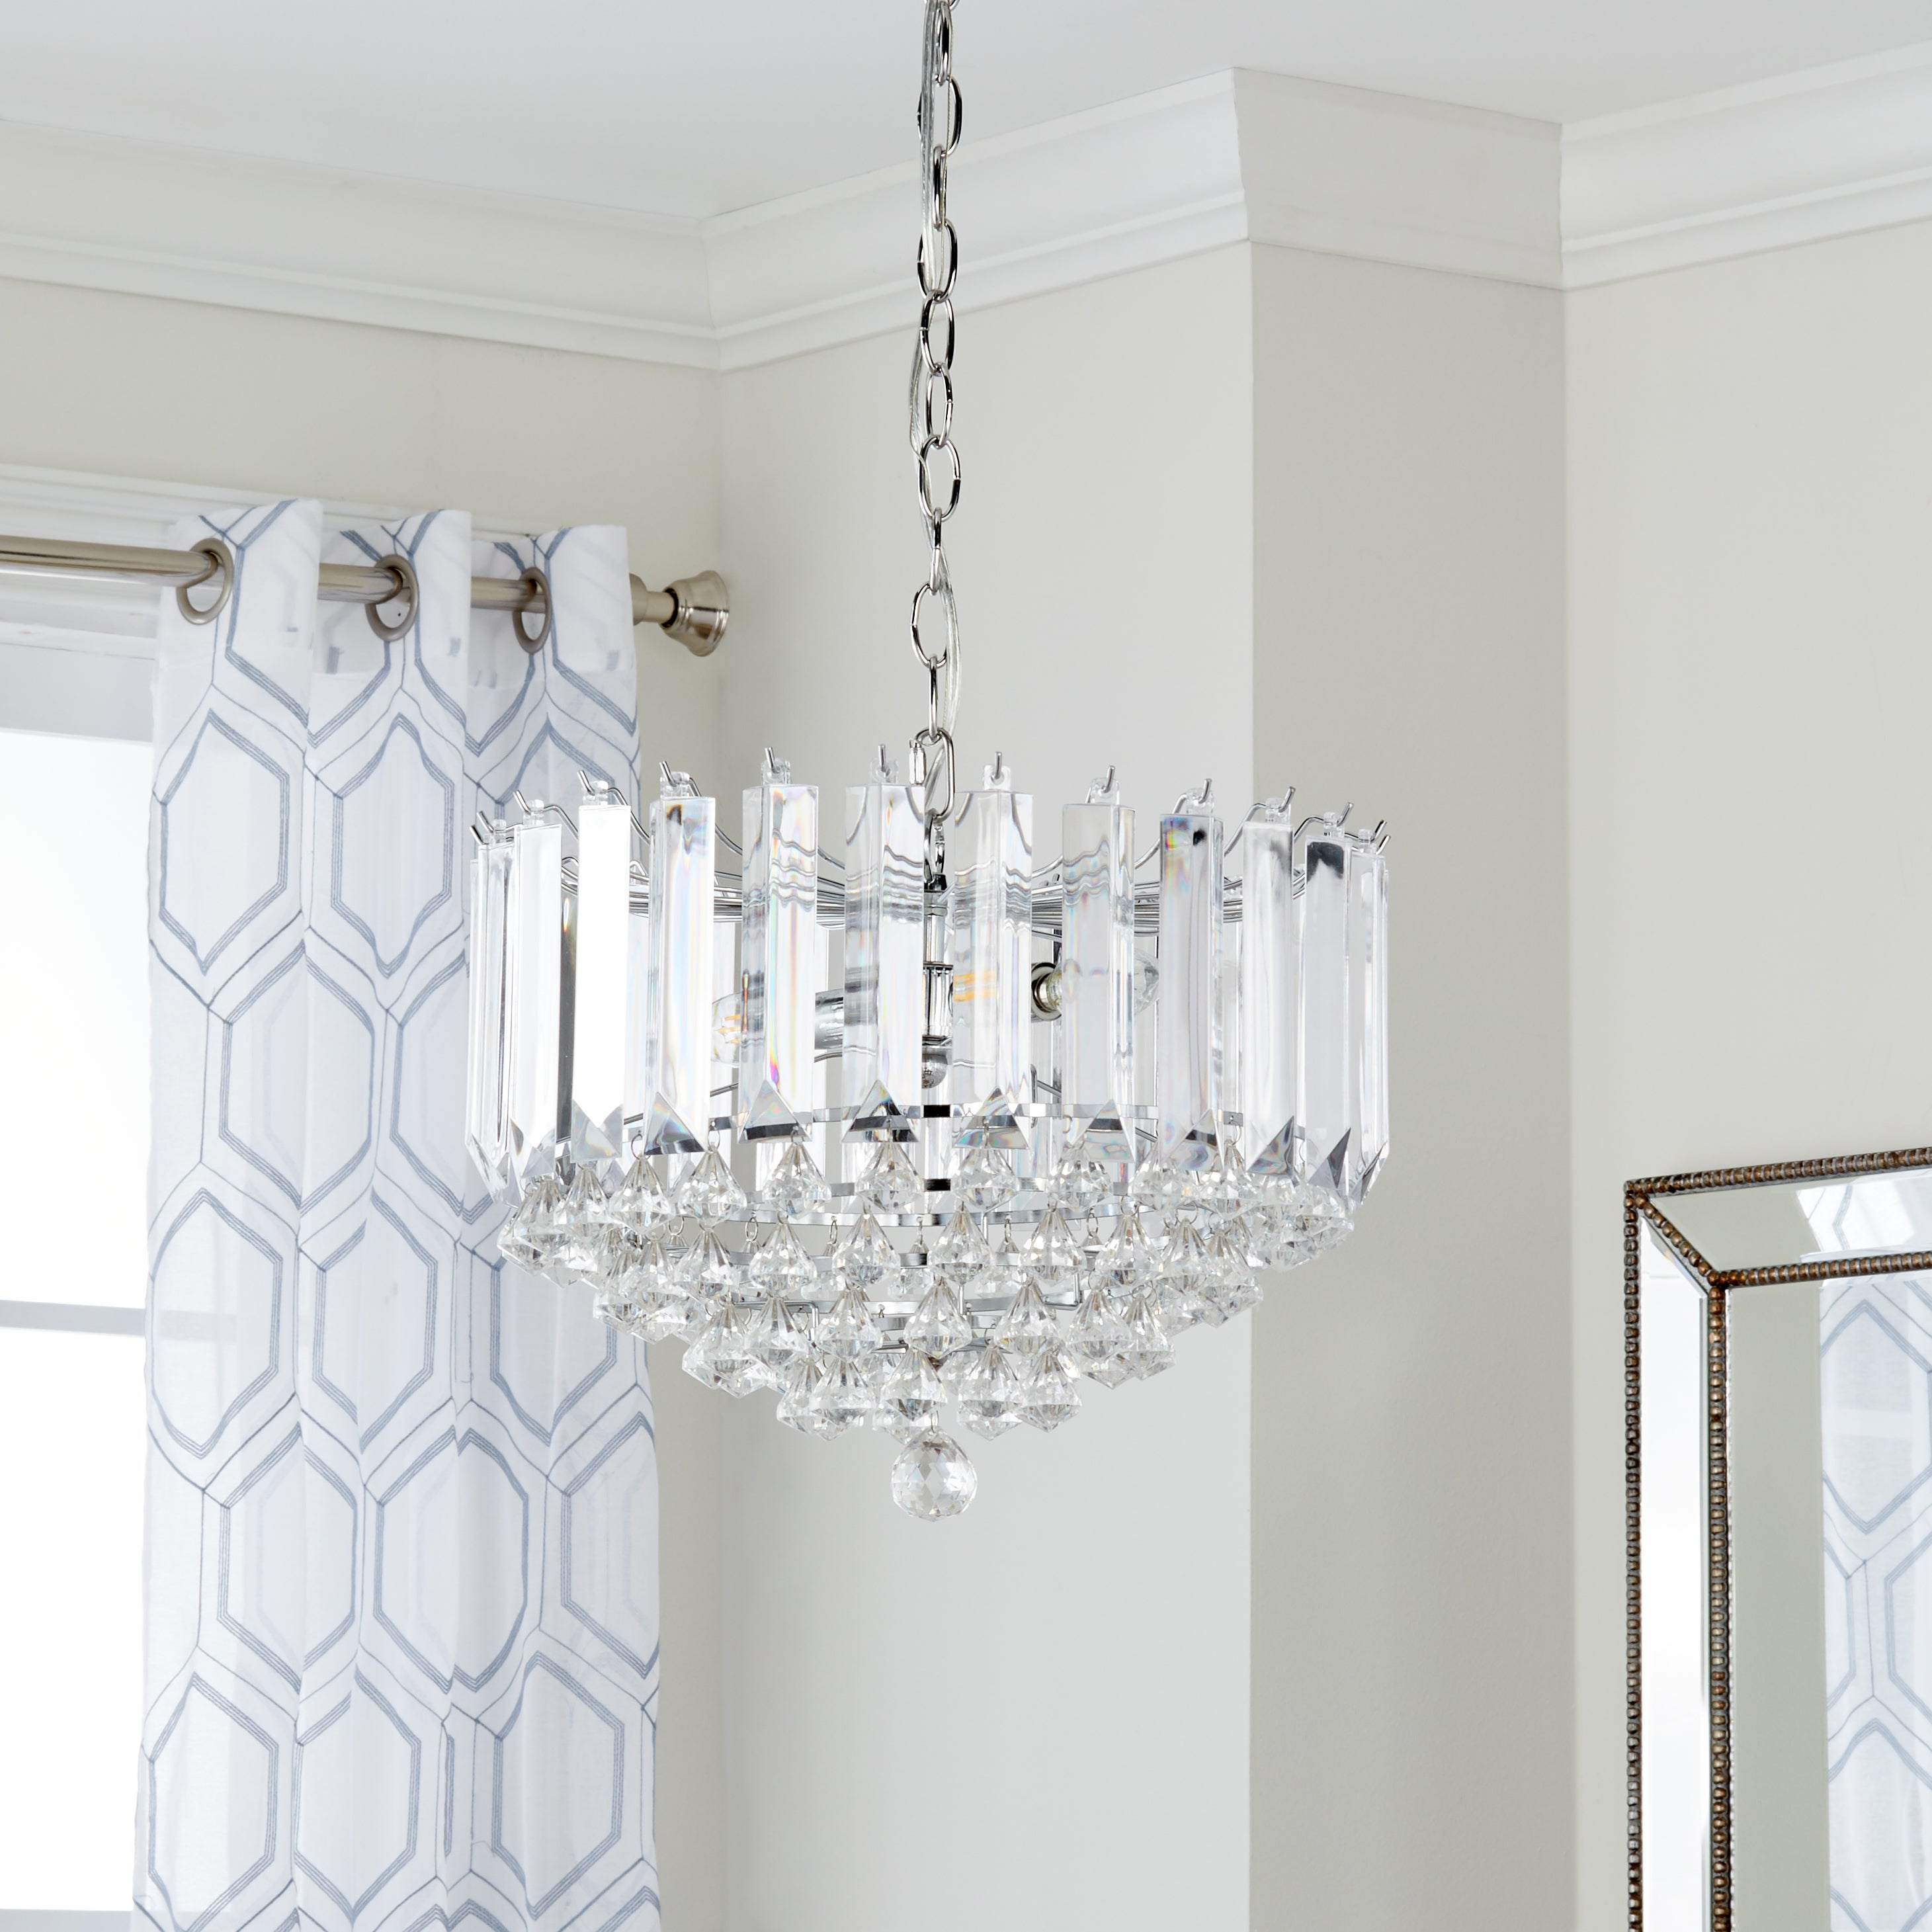 Shop safavieh lighting 165 inch hampton 2 light chrome clear shop safavieh lighting 165 inch hampton 2 light chrome clear adjustable pendant lamp on sale free shipping today overstock 12738519 aloadofball Image collections